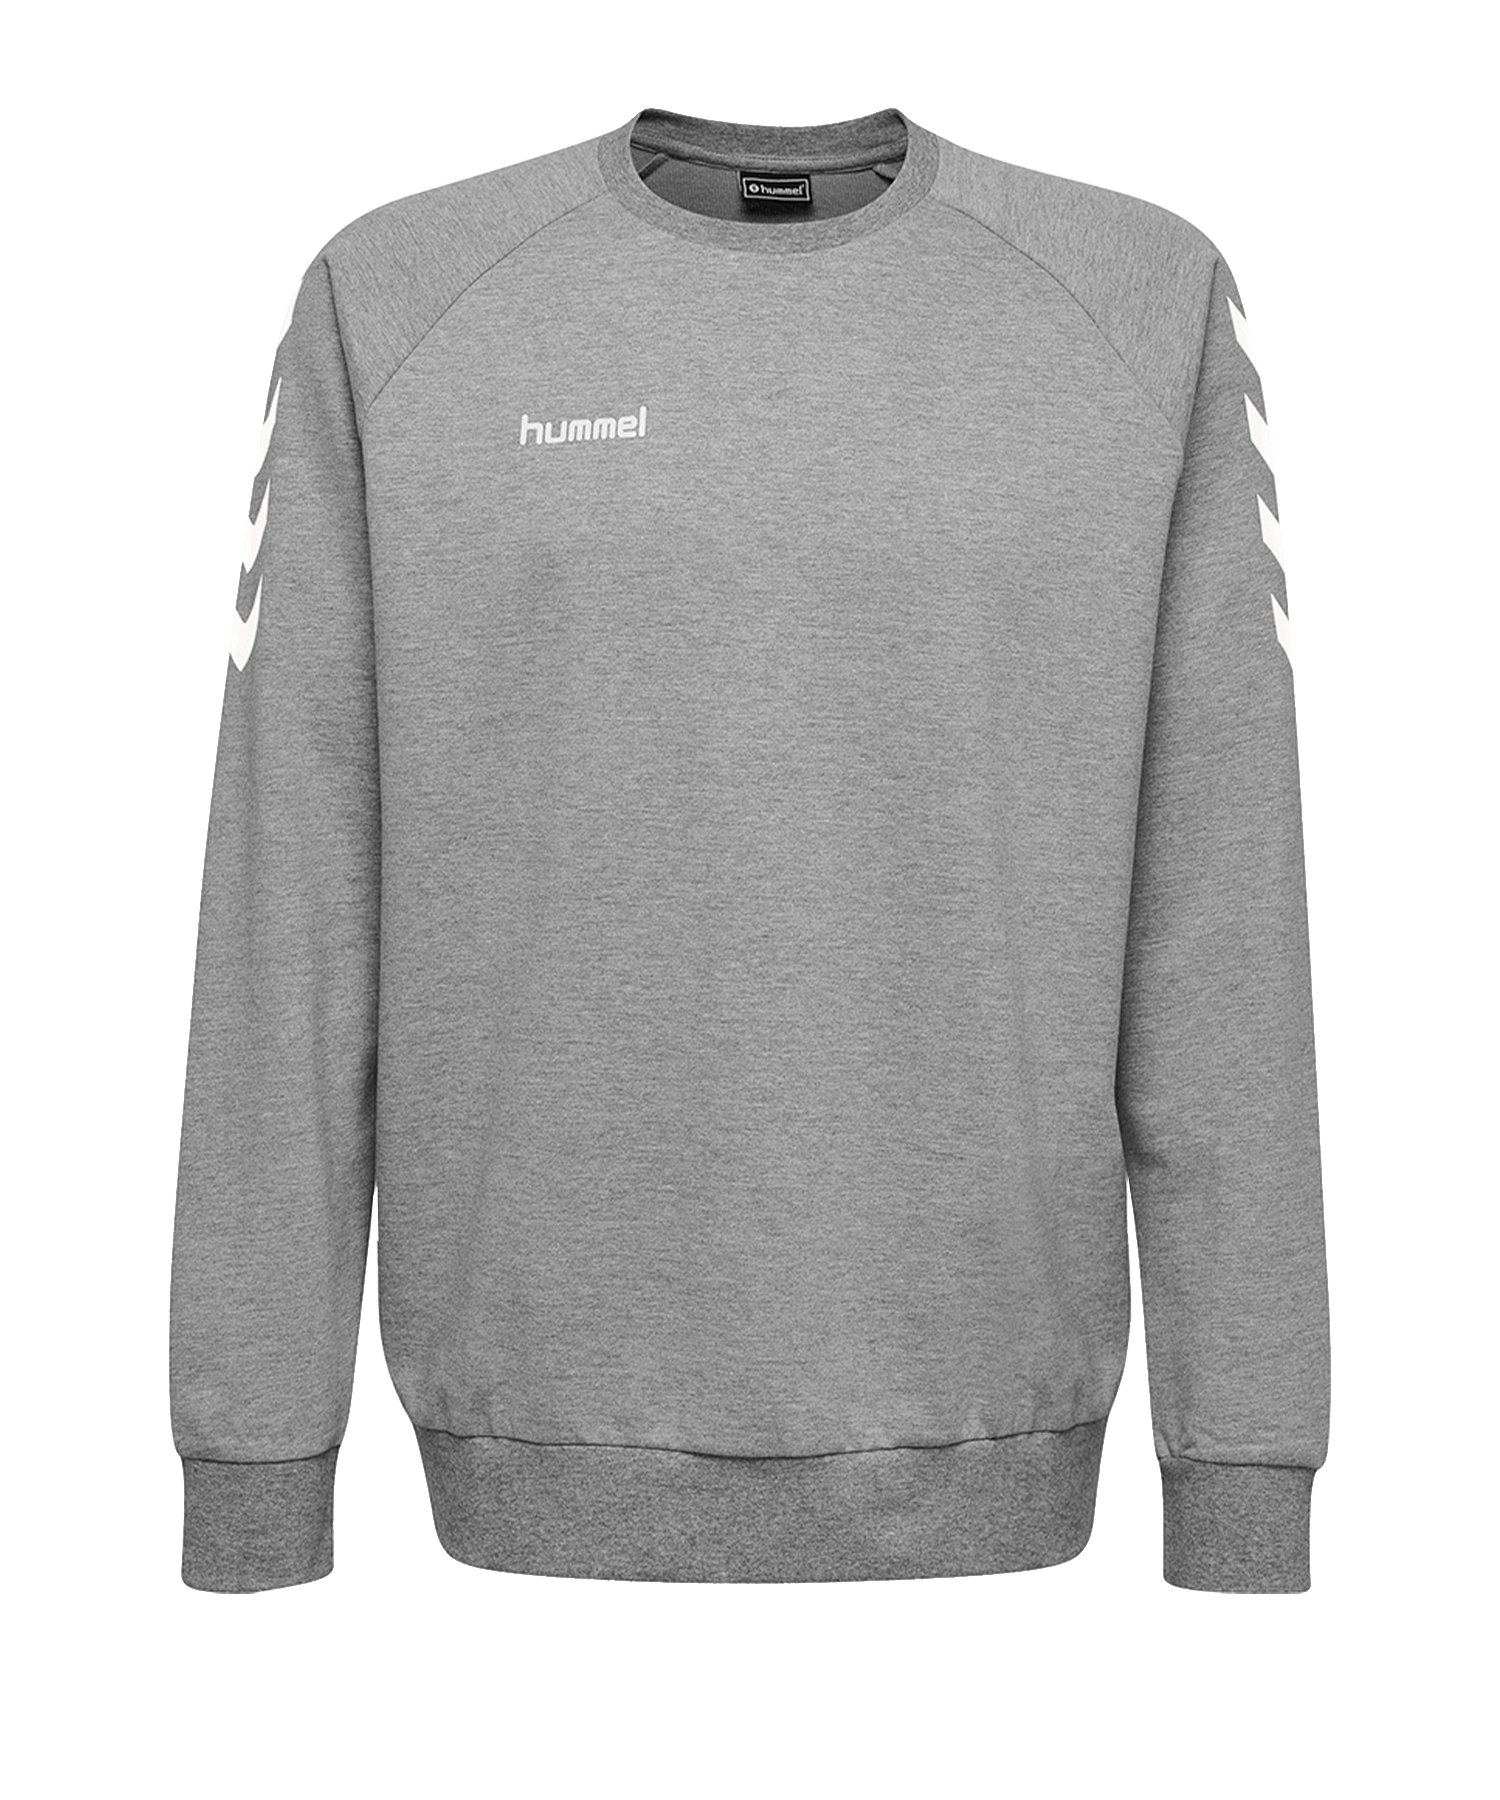 Hummel Cotton Sweatshirt Kids Grau F2006 - Grau